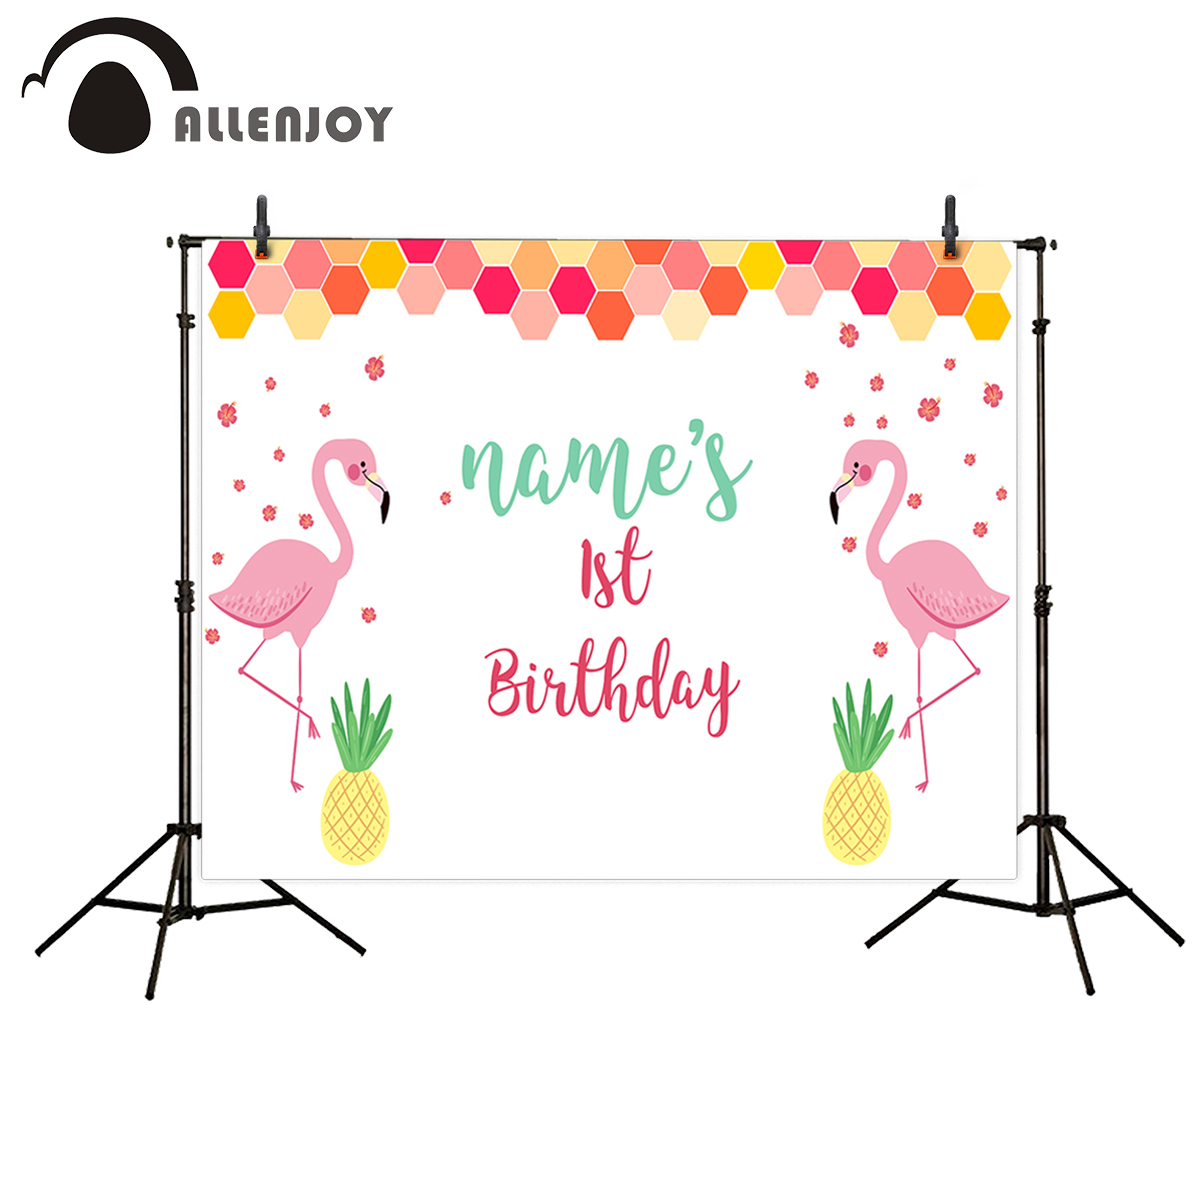 Allenjoy photography backdrops Flamingo Pineapple Birthday Background Party photocall photography background